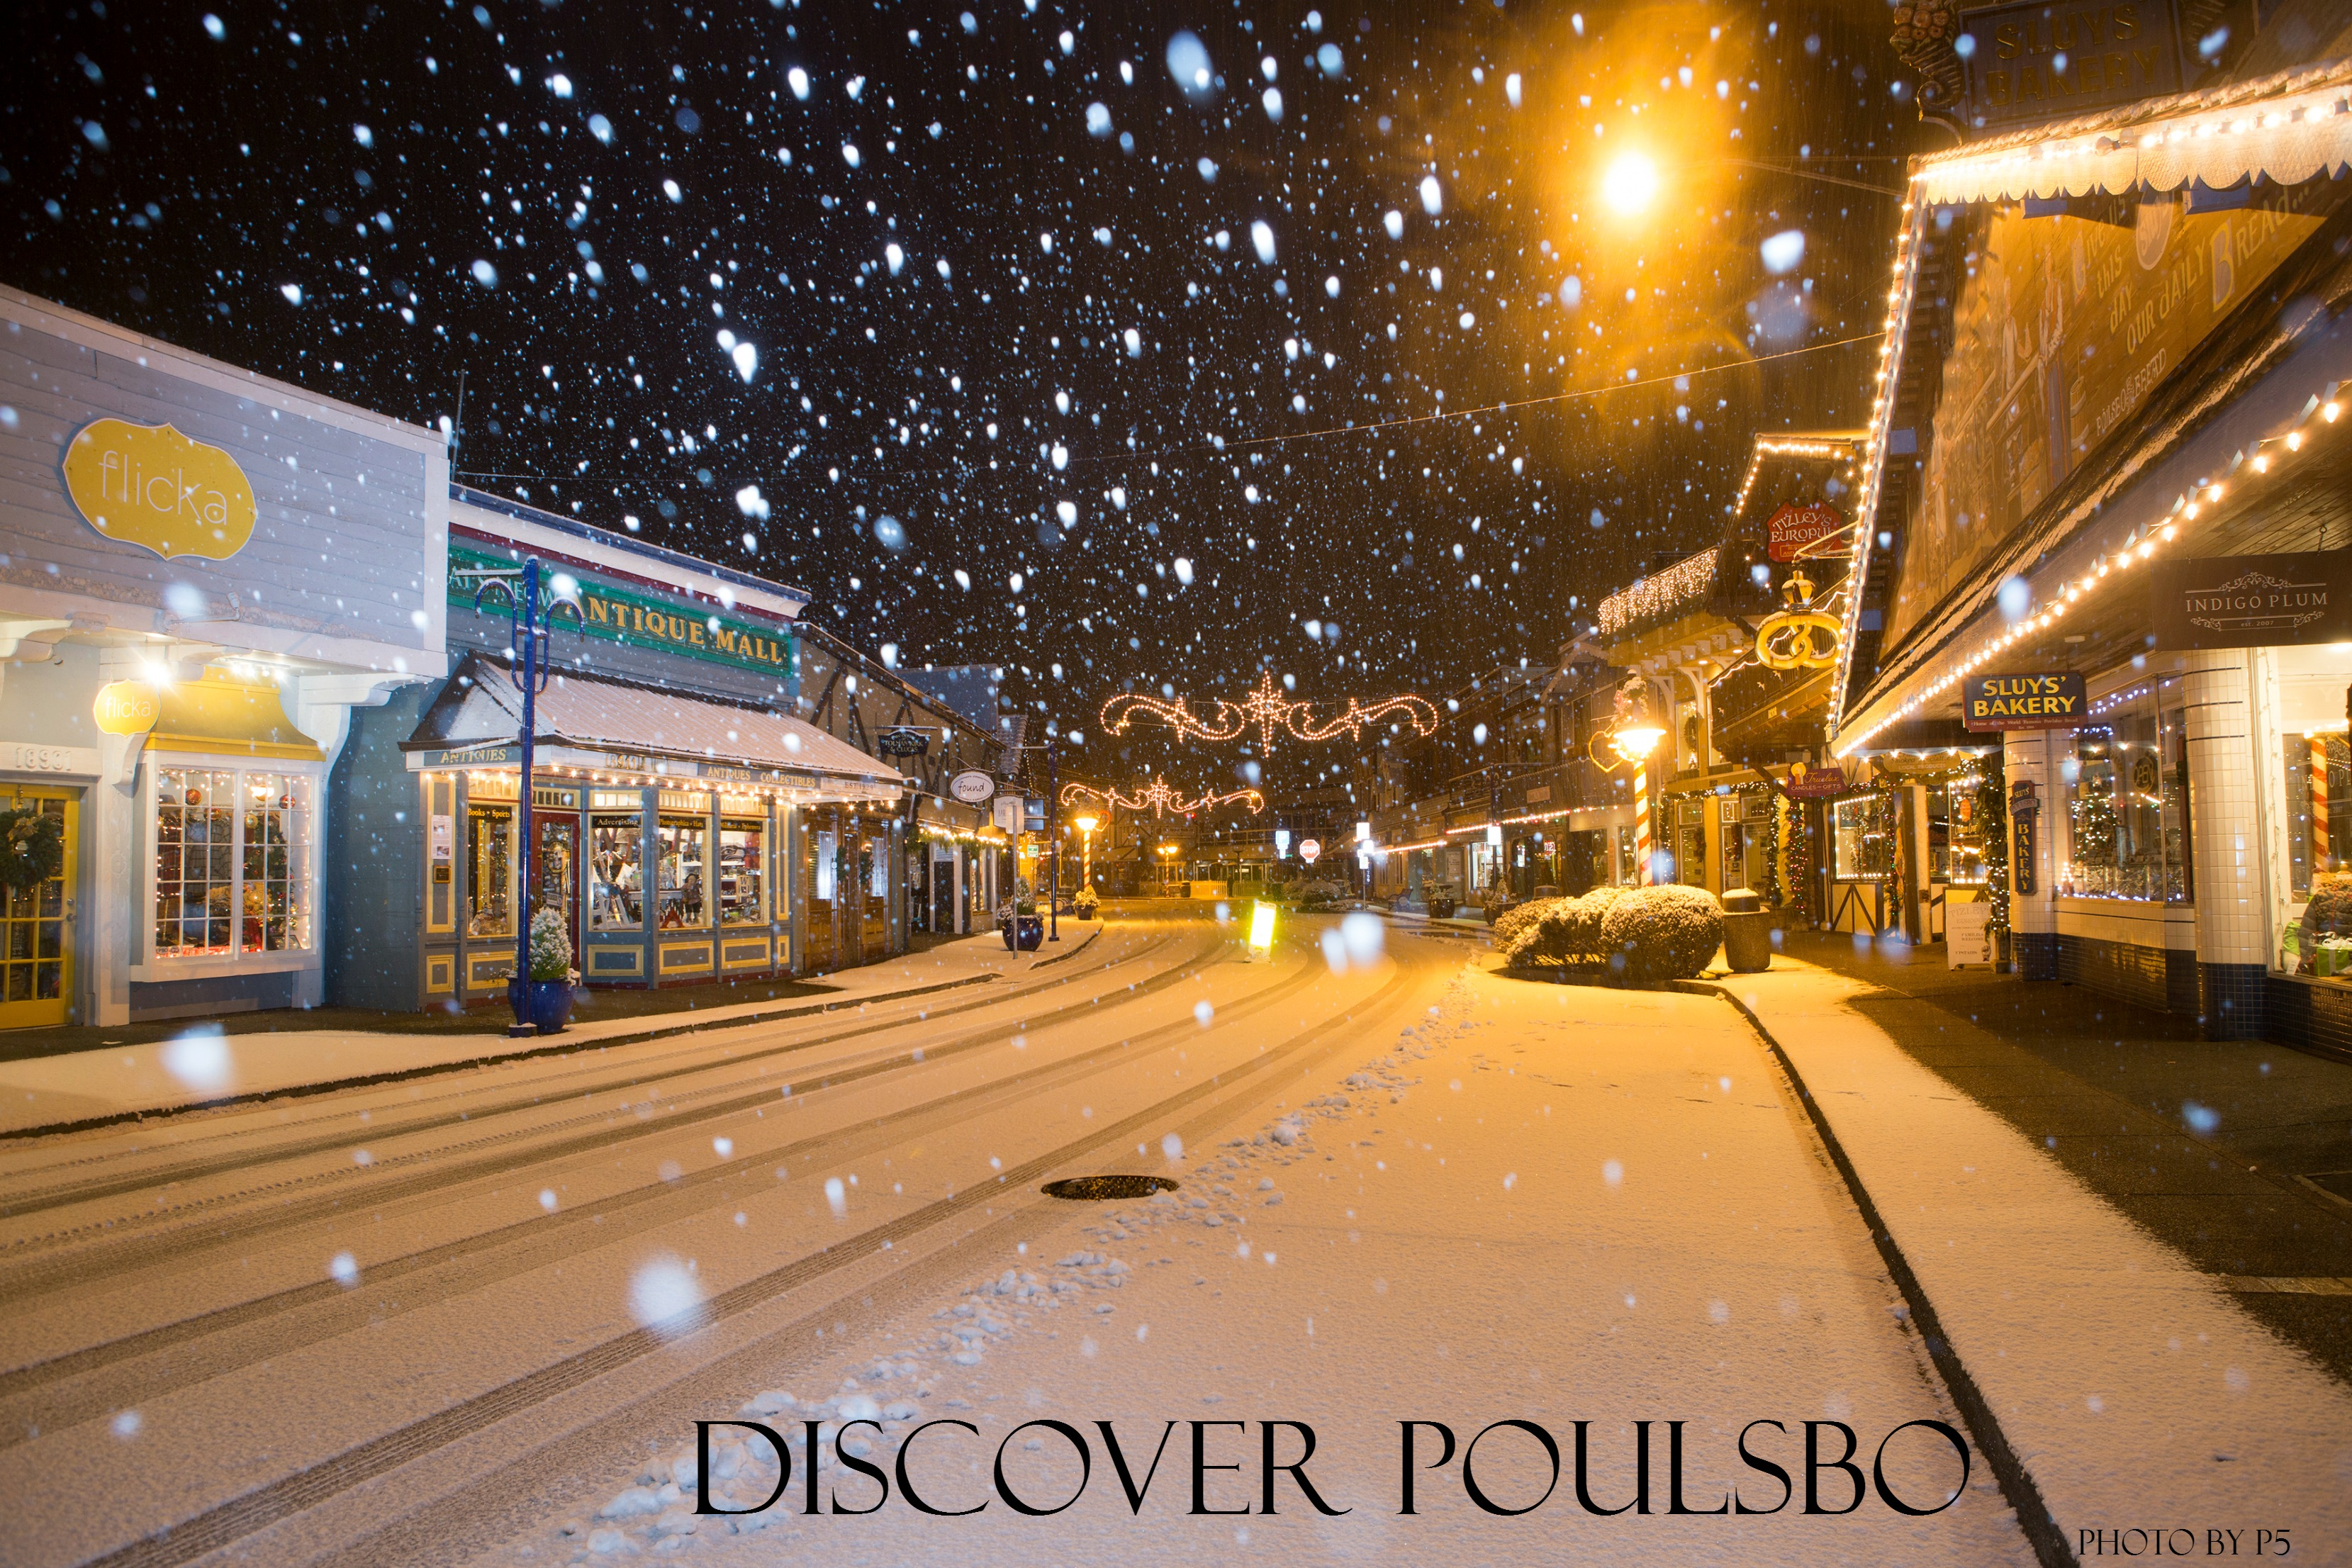 Discover Poulsbo